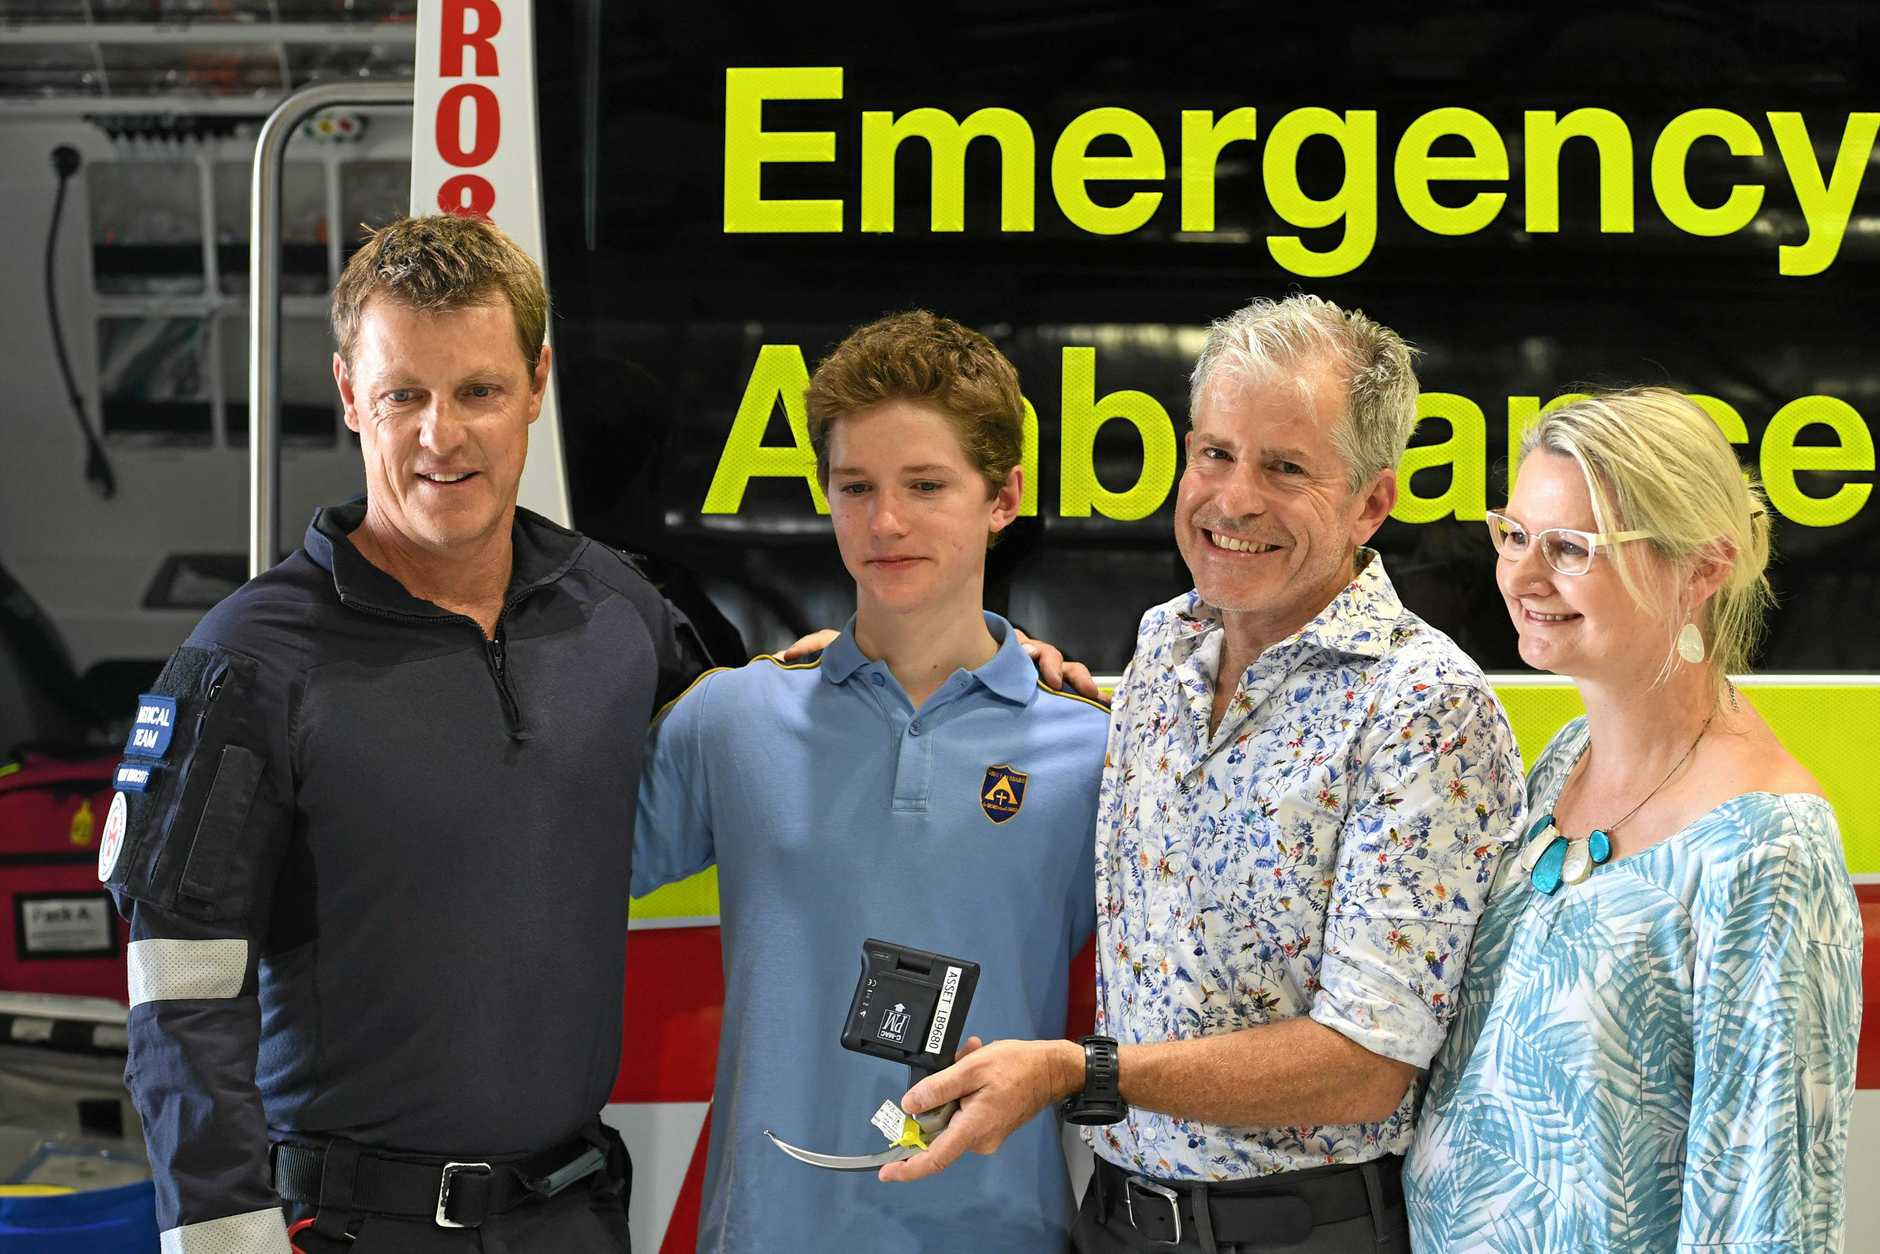 Connor Meldrum, Kim Goodrick (mum) and Dr David Meldrum (dad), meet New South Wales Ambulance Critical Care Paramedic Rolly Murcott and praise the medical and retrieval team from the Westpac Life Saver Rescue Helicopter who rescued Connor and helped save his life.